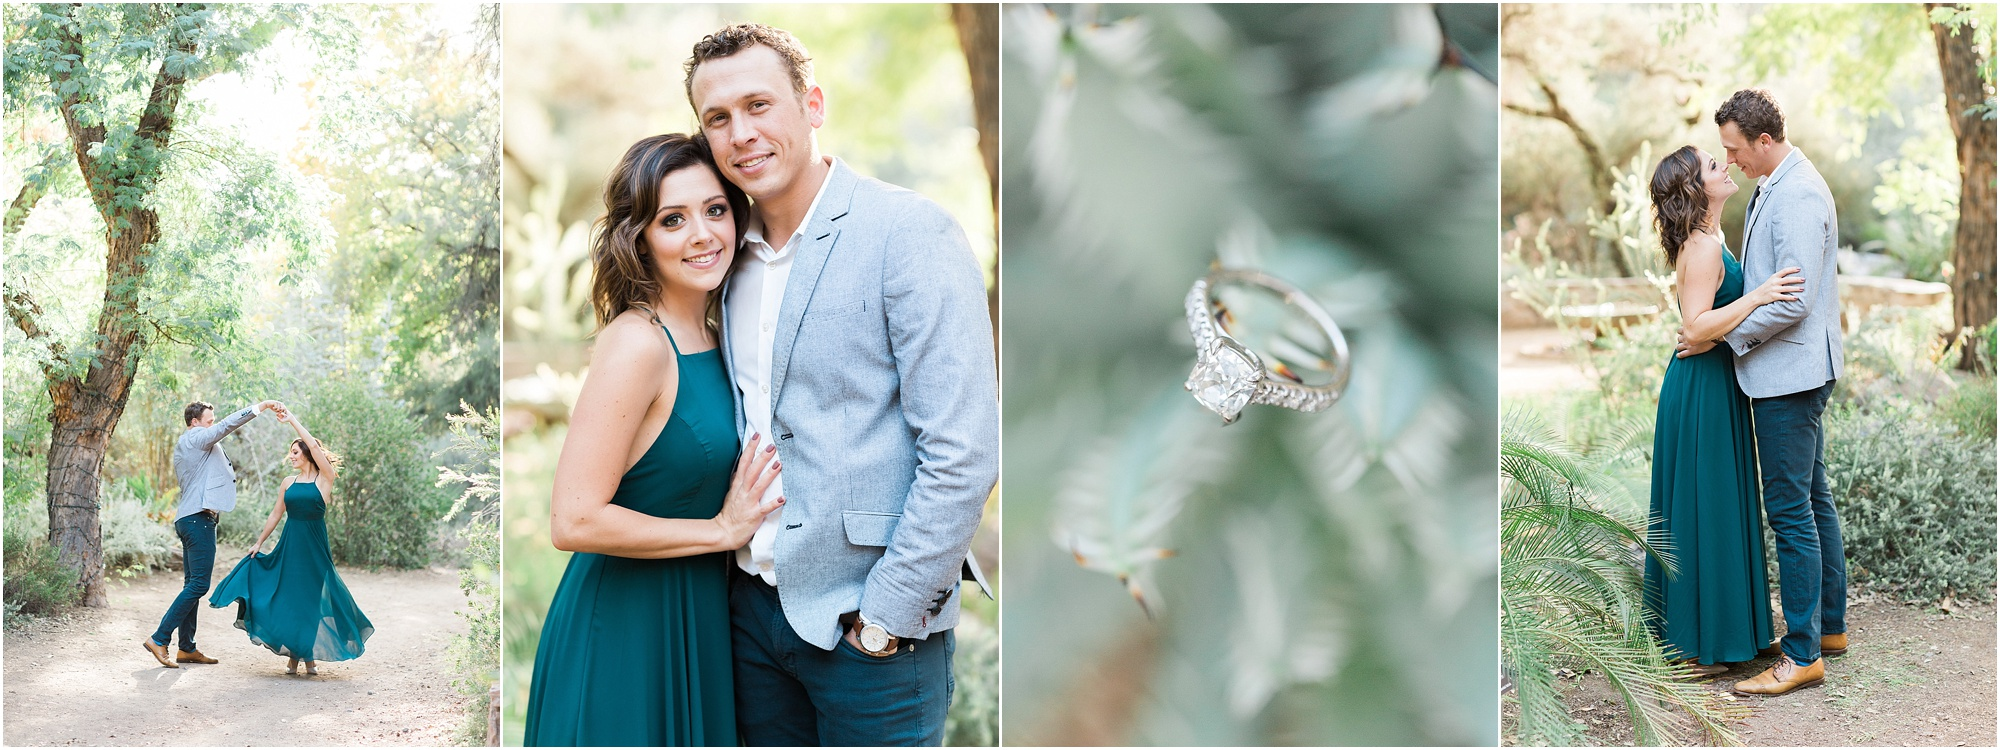 Tucson-engagement-photographer